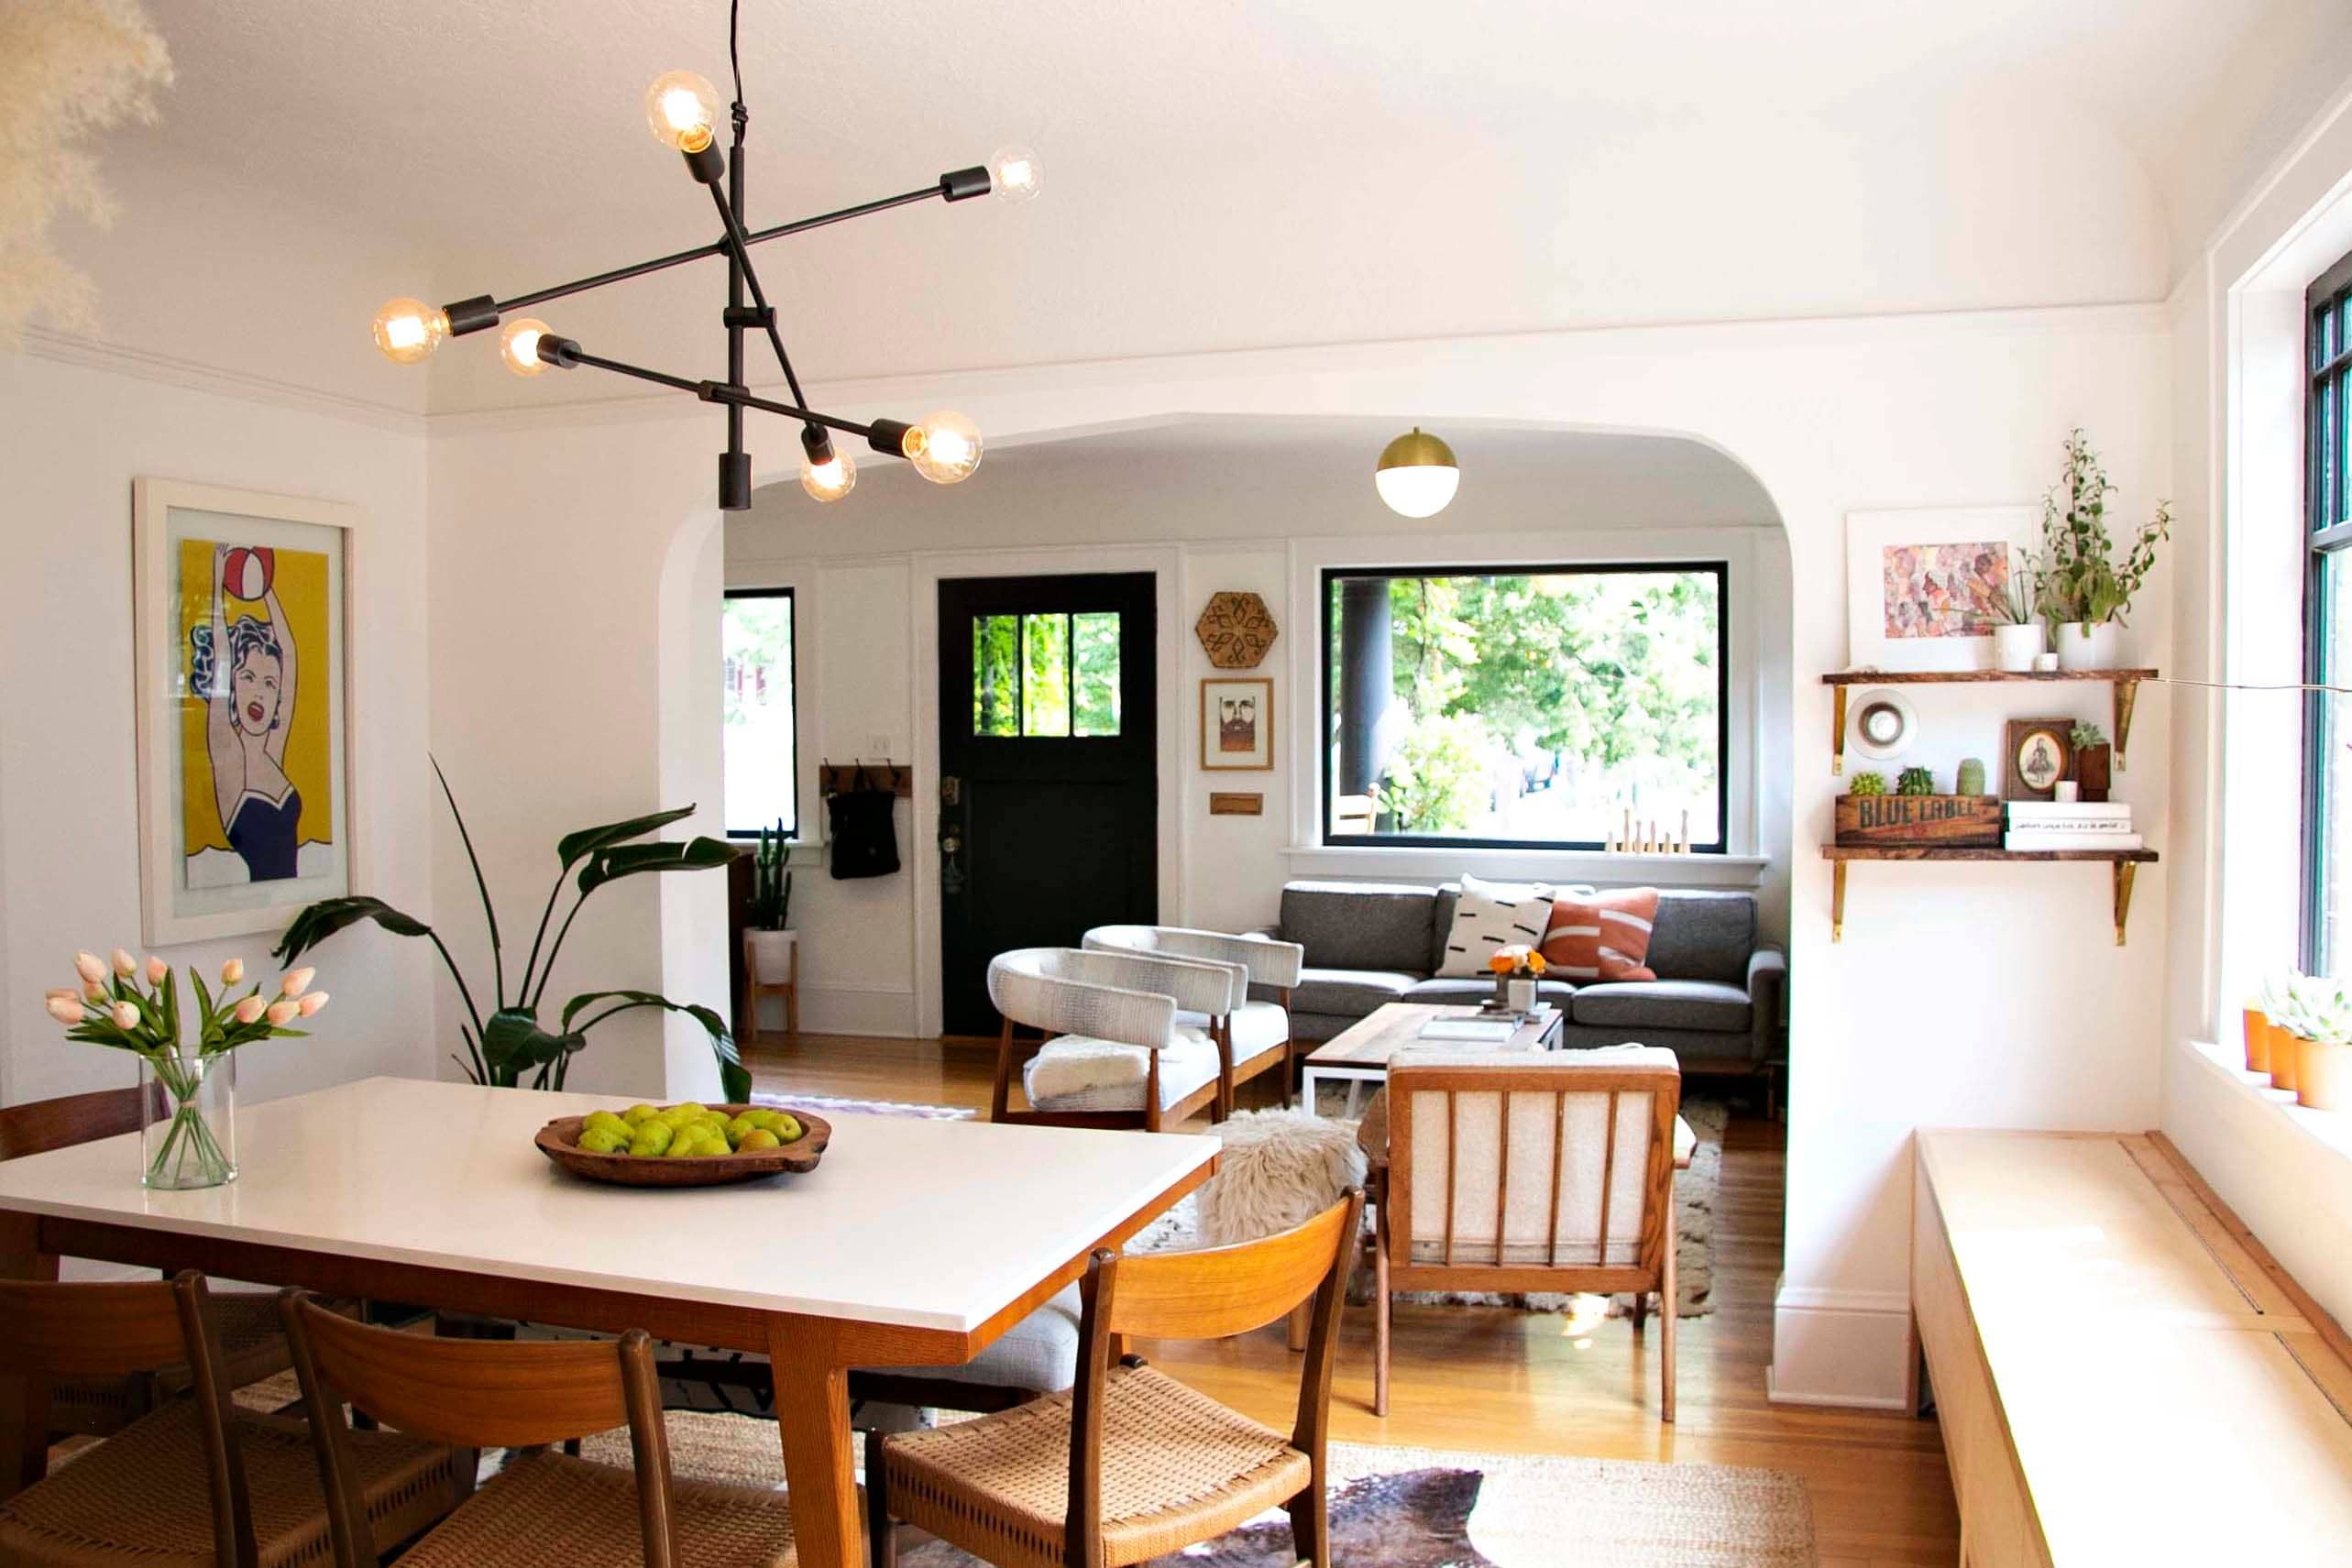 A Small Swedish Bungalow In Portland Is Diyed And Adorable Home Natural Home Decor Home Decor